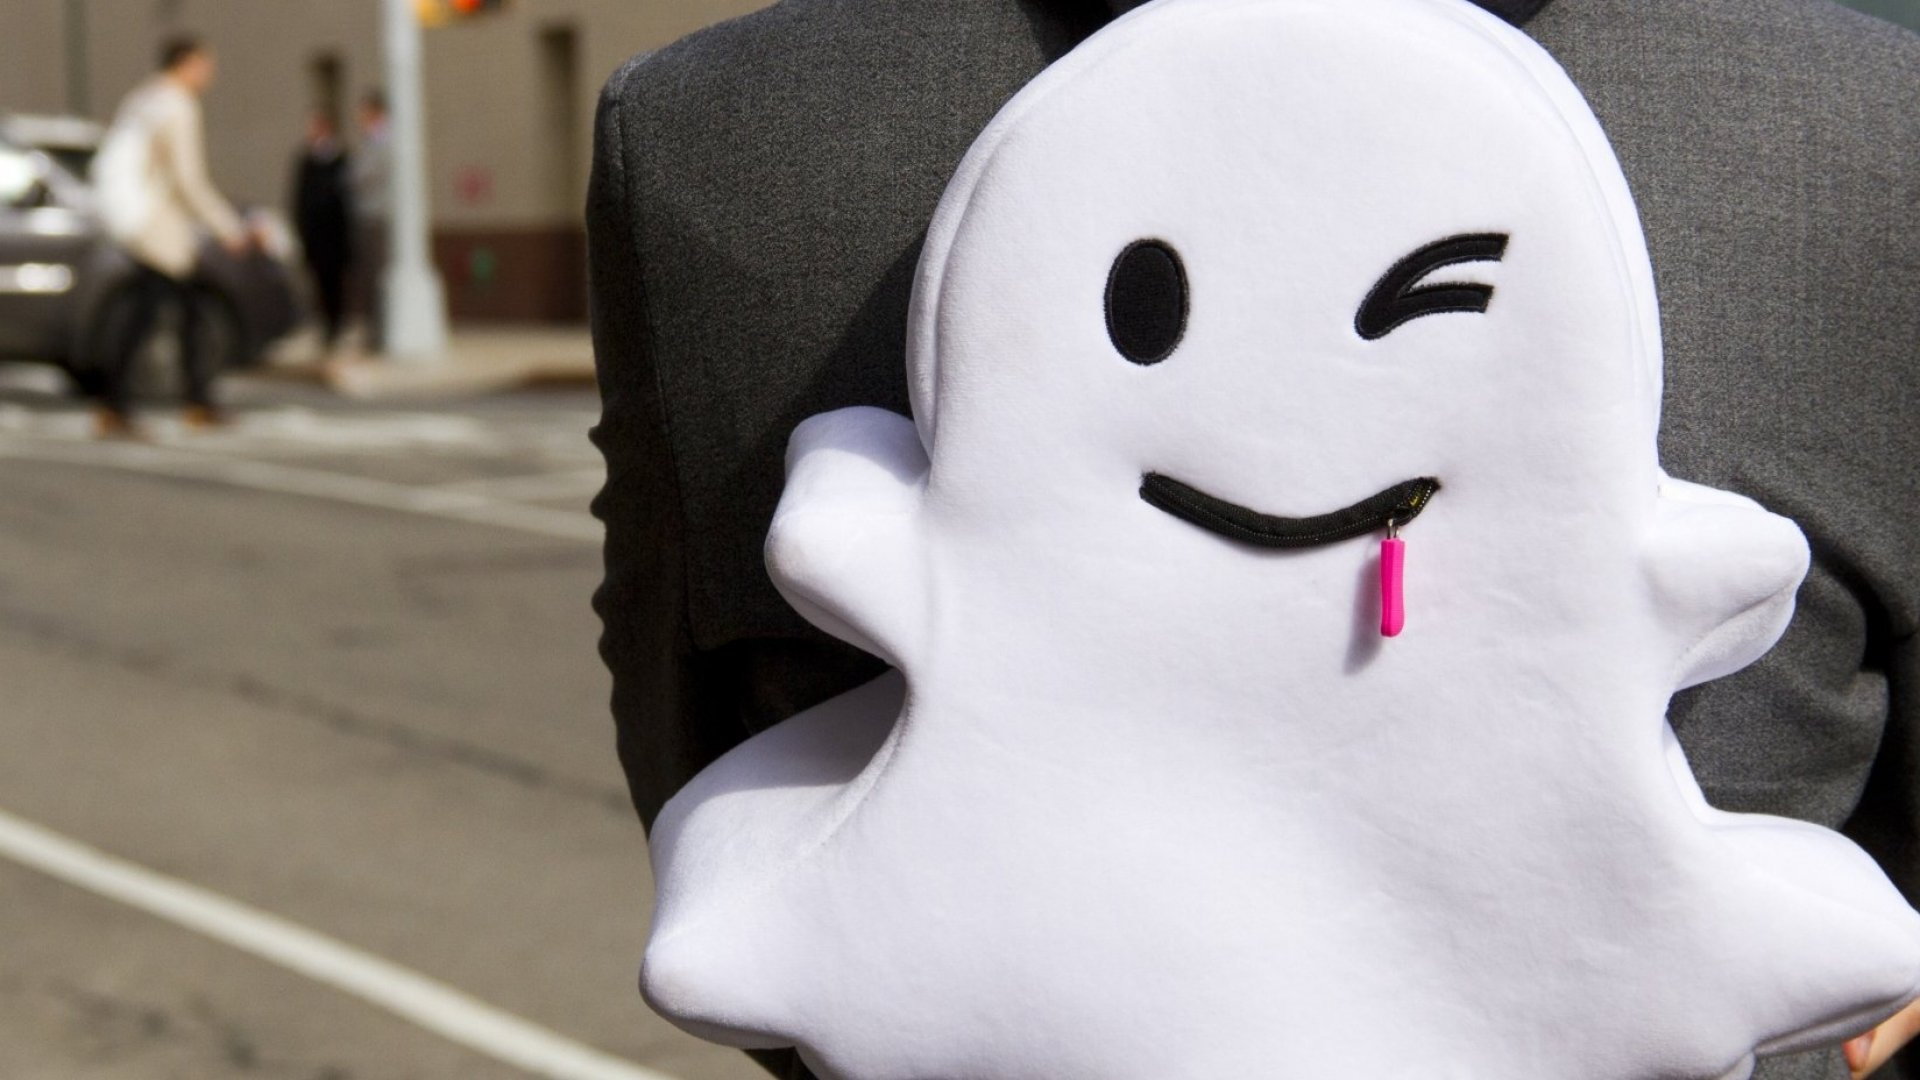 Snap, Always Secretive, Reveals 'Snap-a-Wish' Program for Employees in $3 Billion IPO Filing